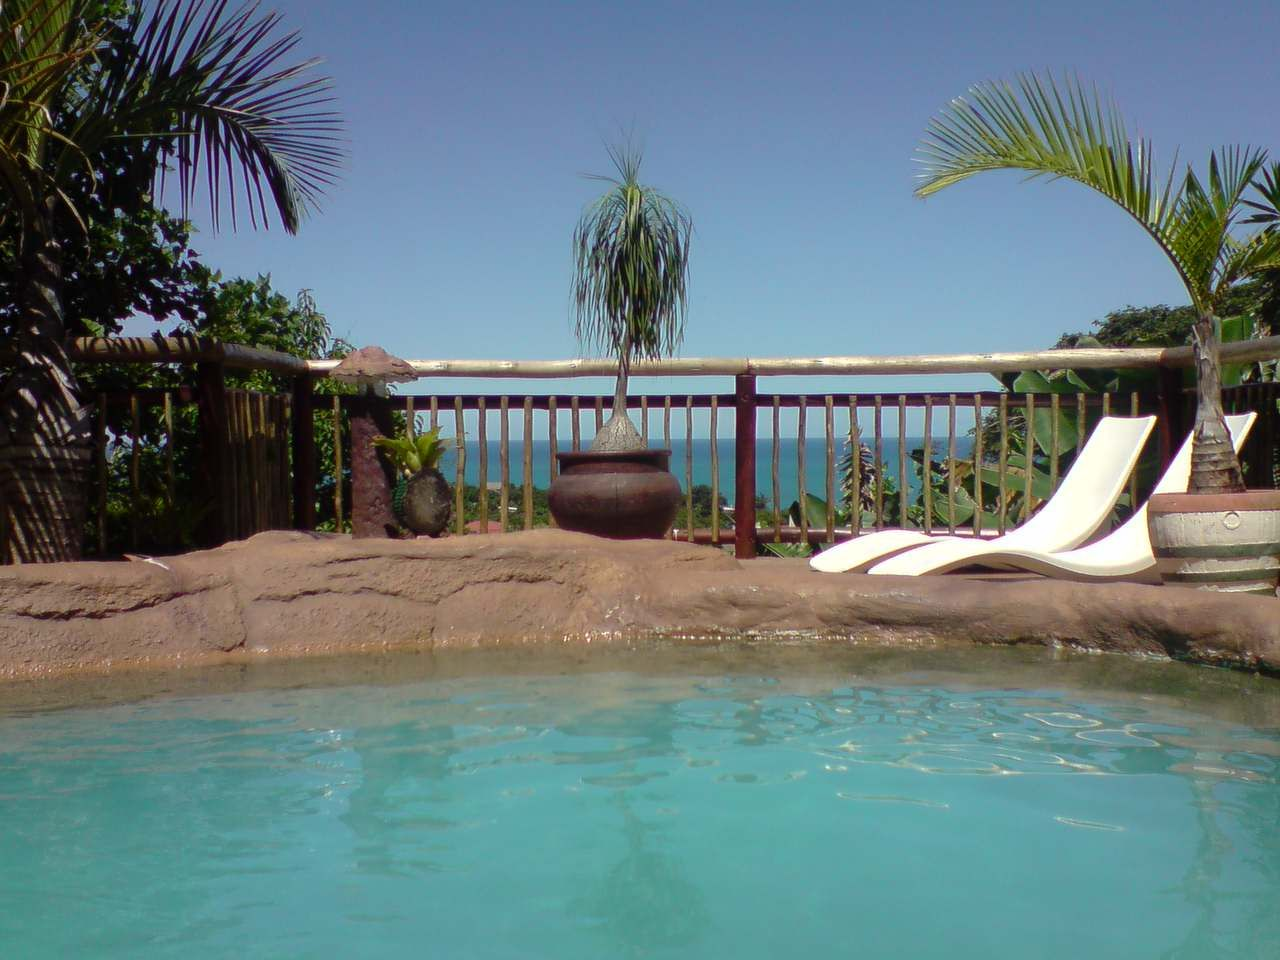 Rocky Pool Guest Cottage, Durban, South Africa